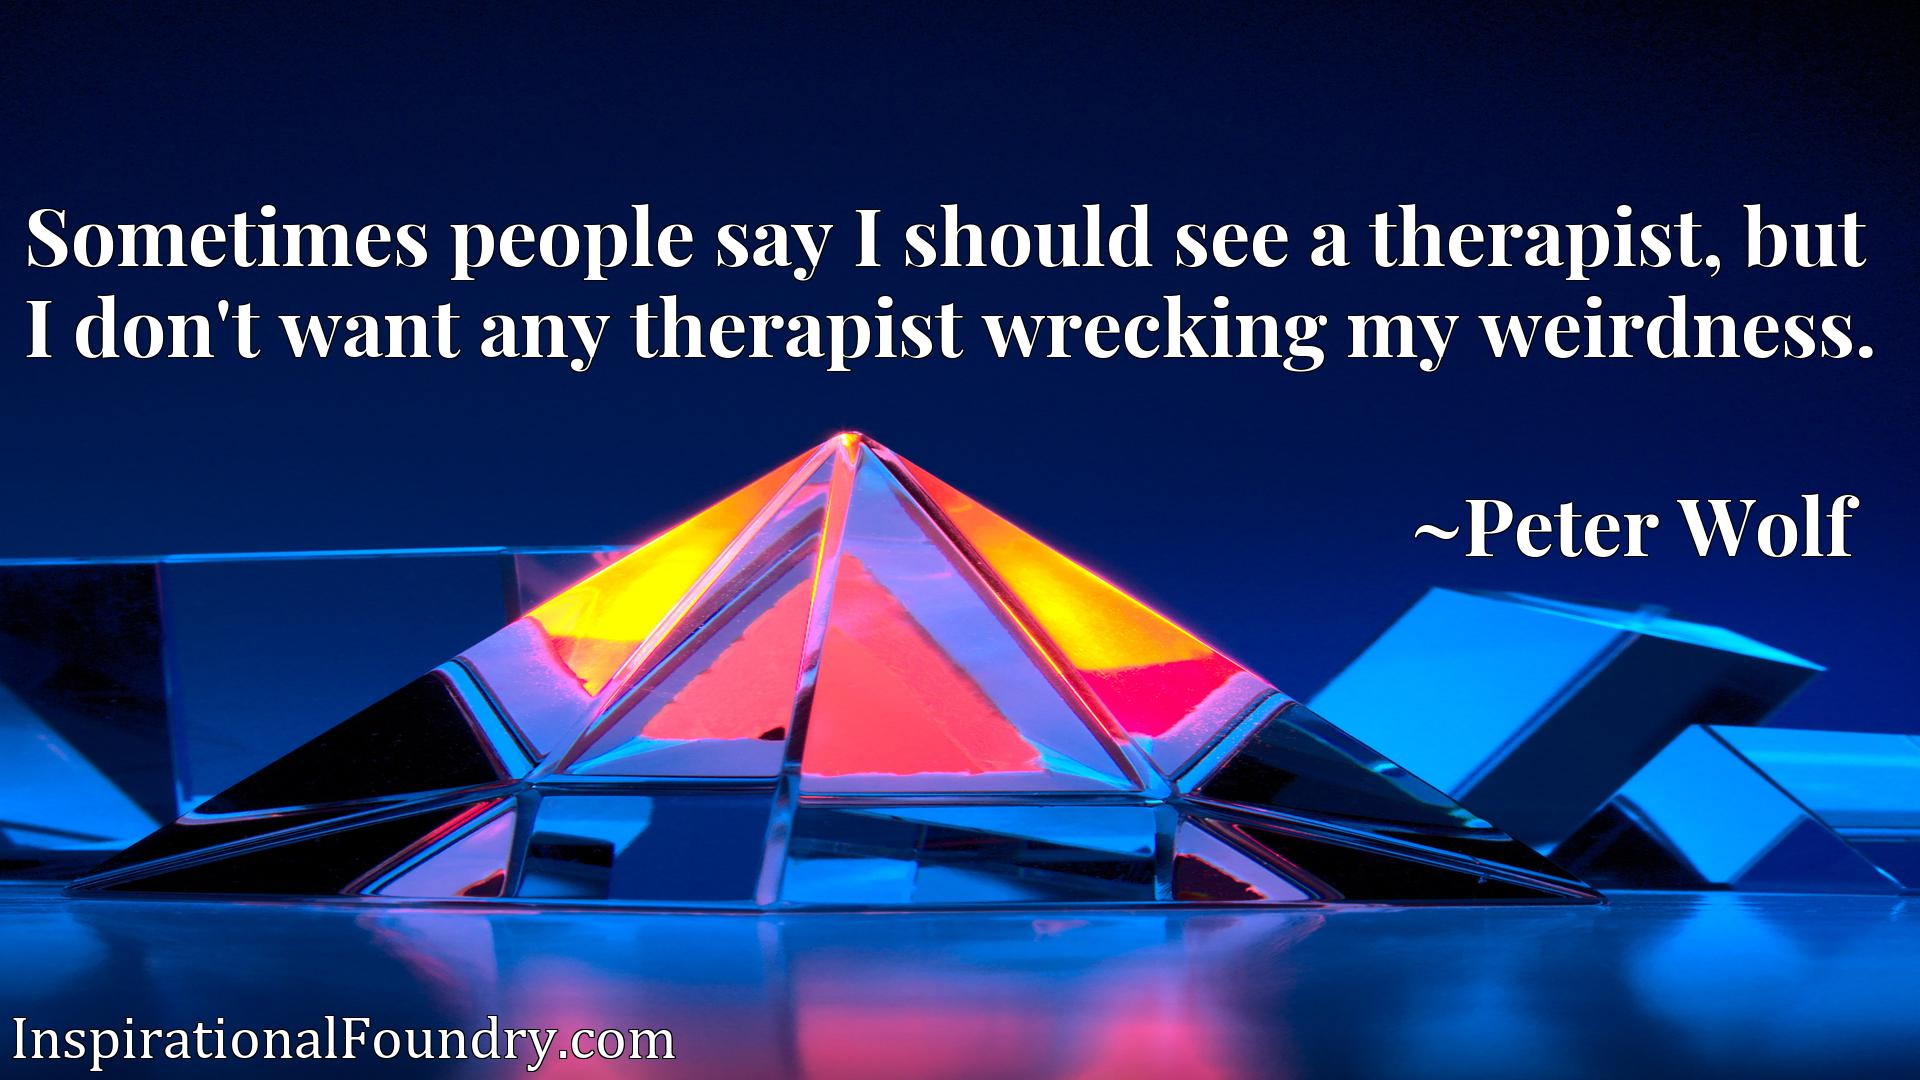 Sometimes people say I should see a therapist, but I don't want any therapist wrecking my weirdness.